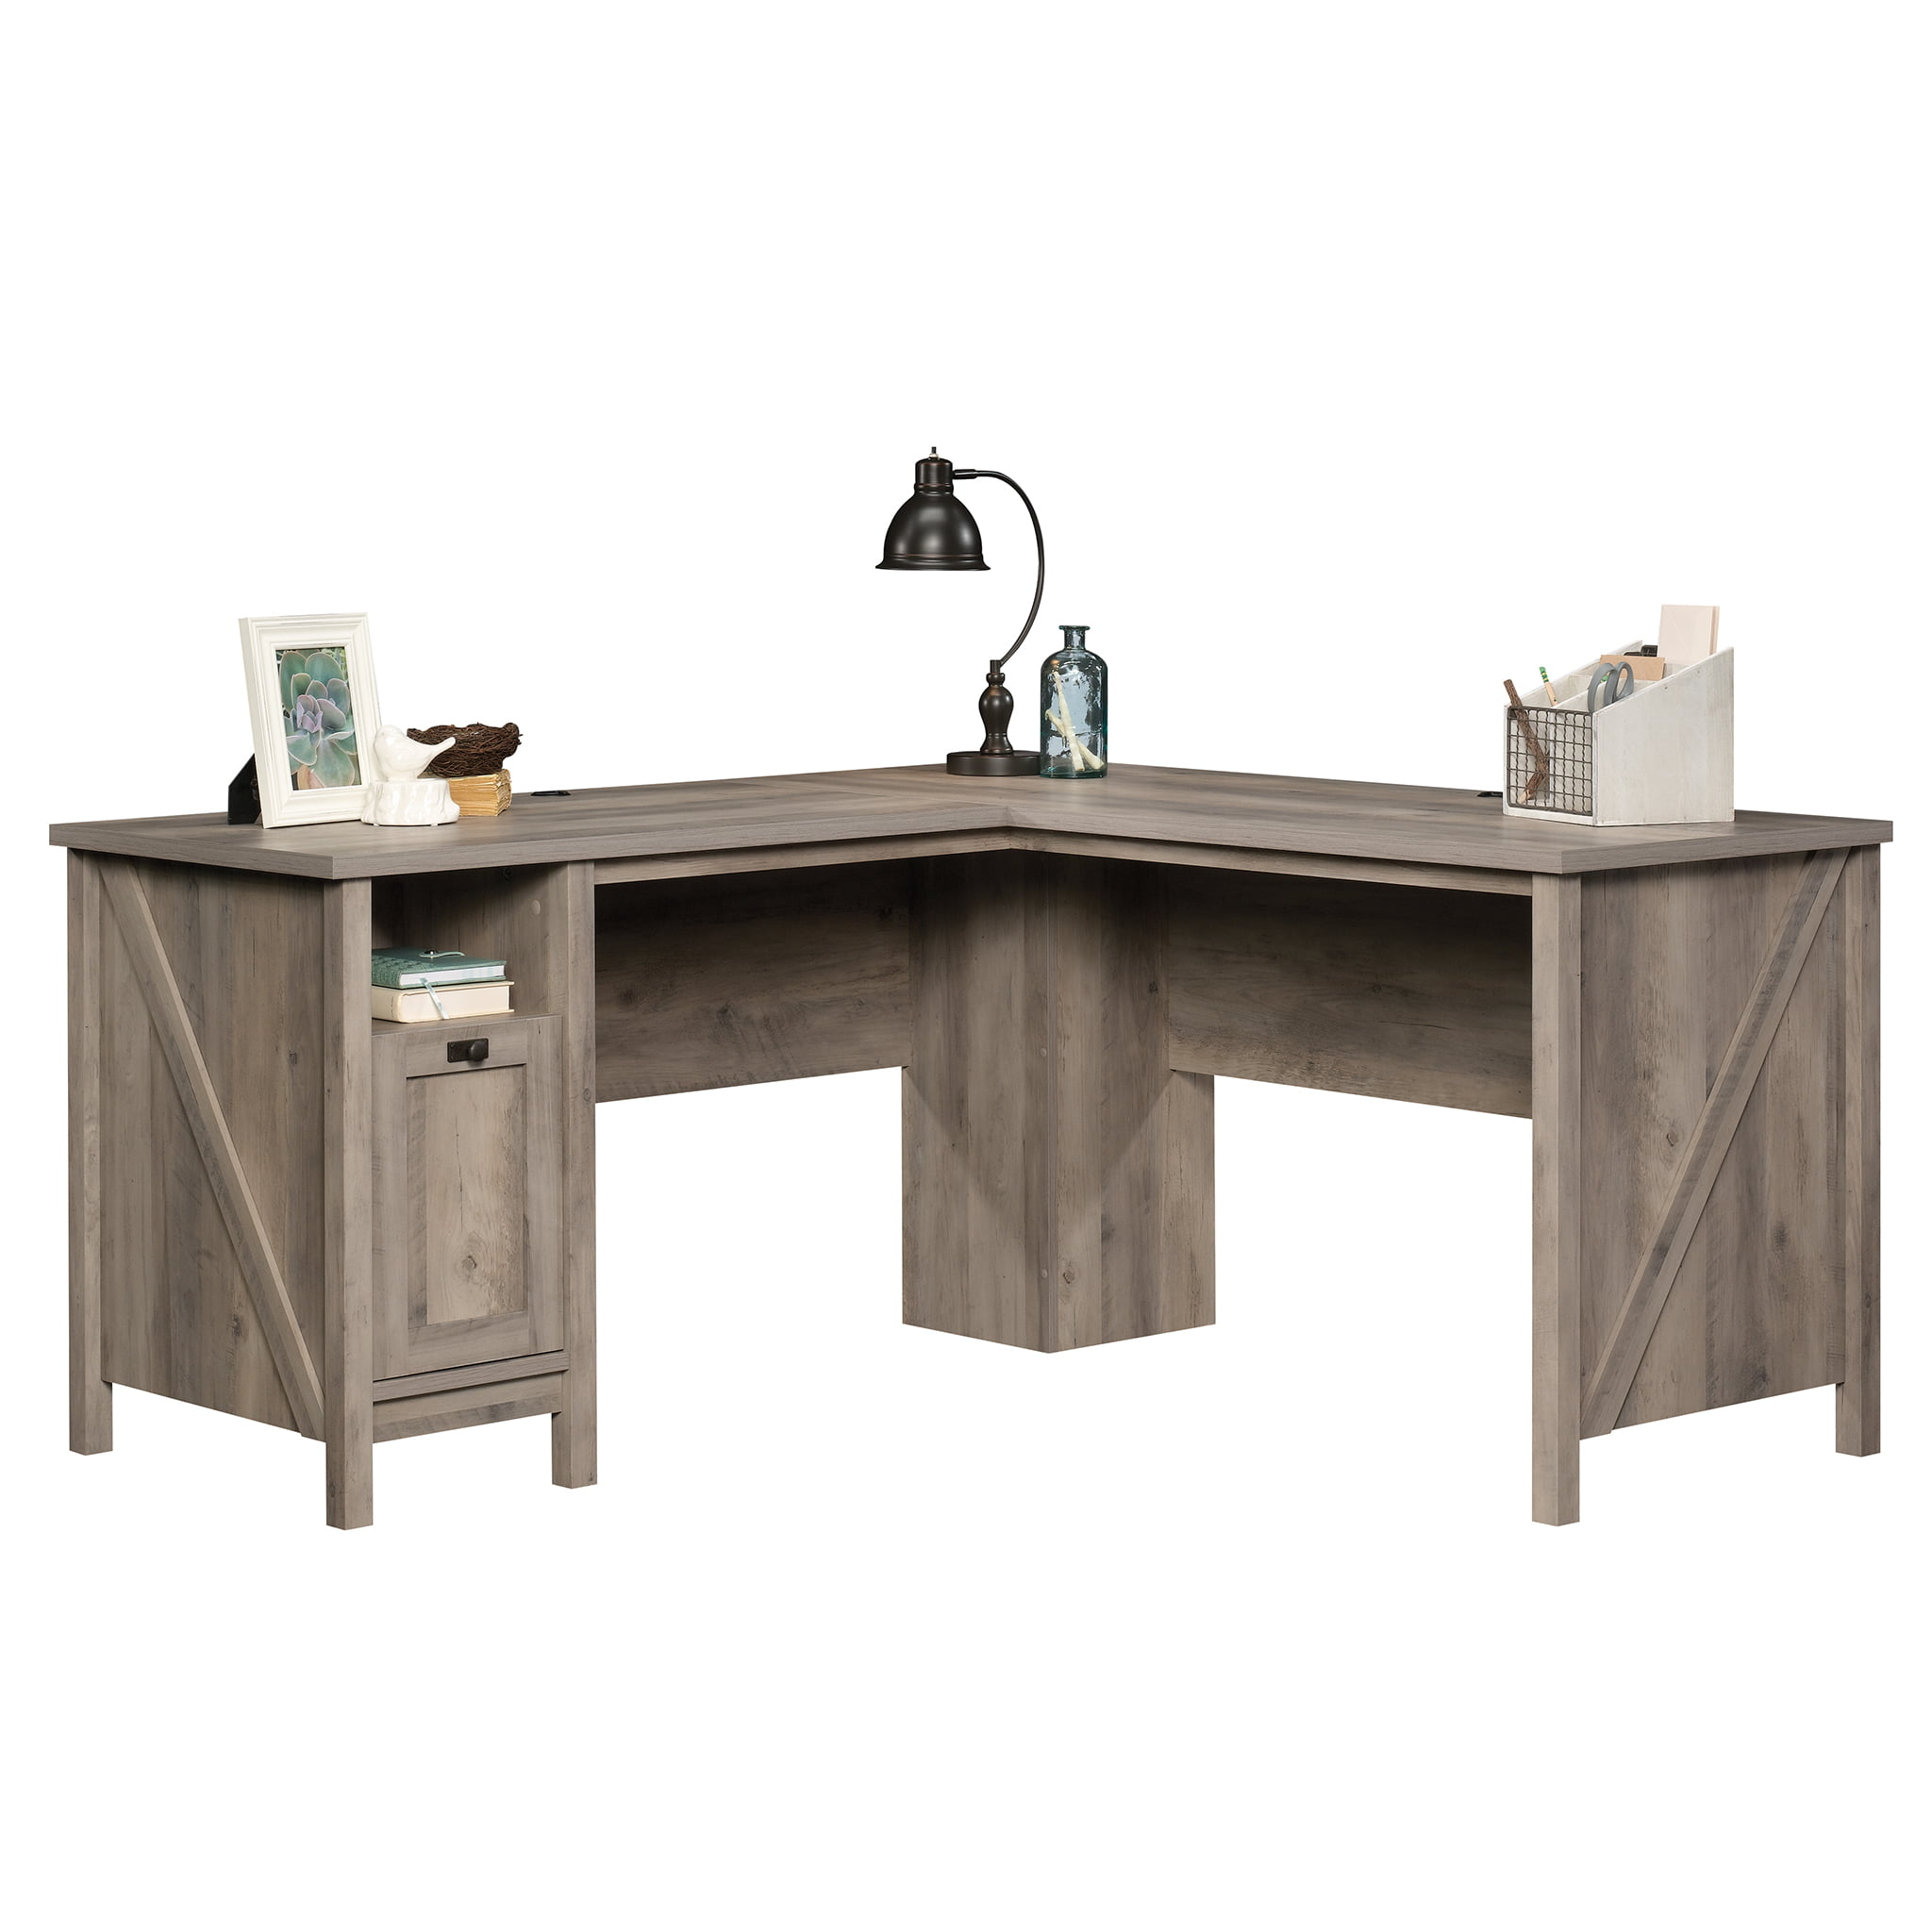 Better Homes Gardens Modern Farmhouse L Desk Rustic Gray Finish Walmart Com Walmart Com